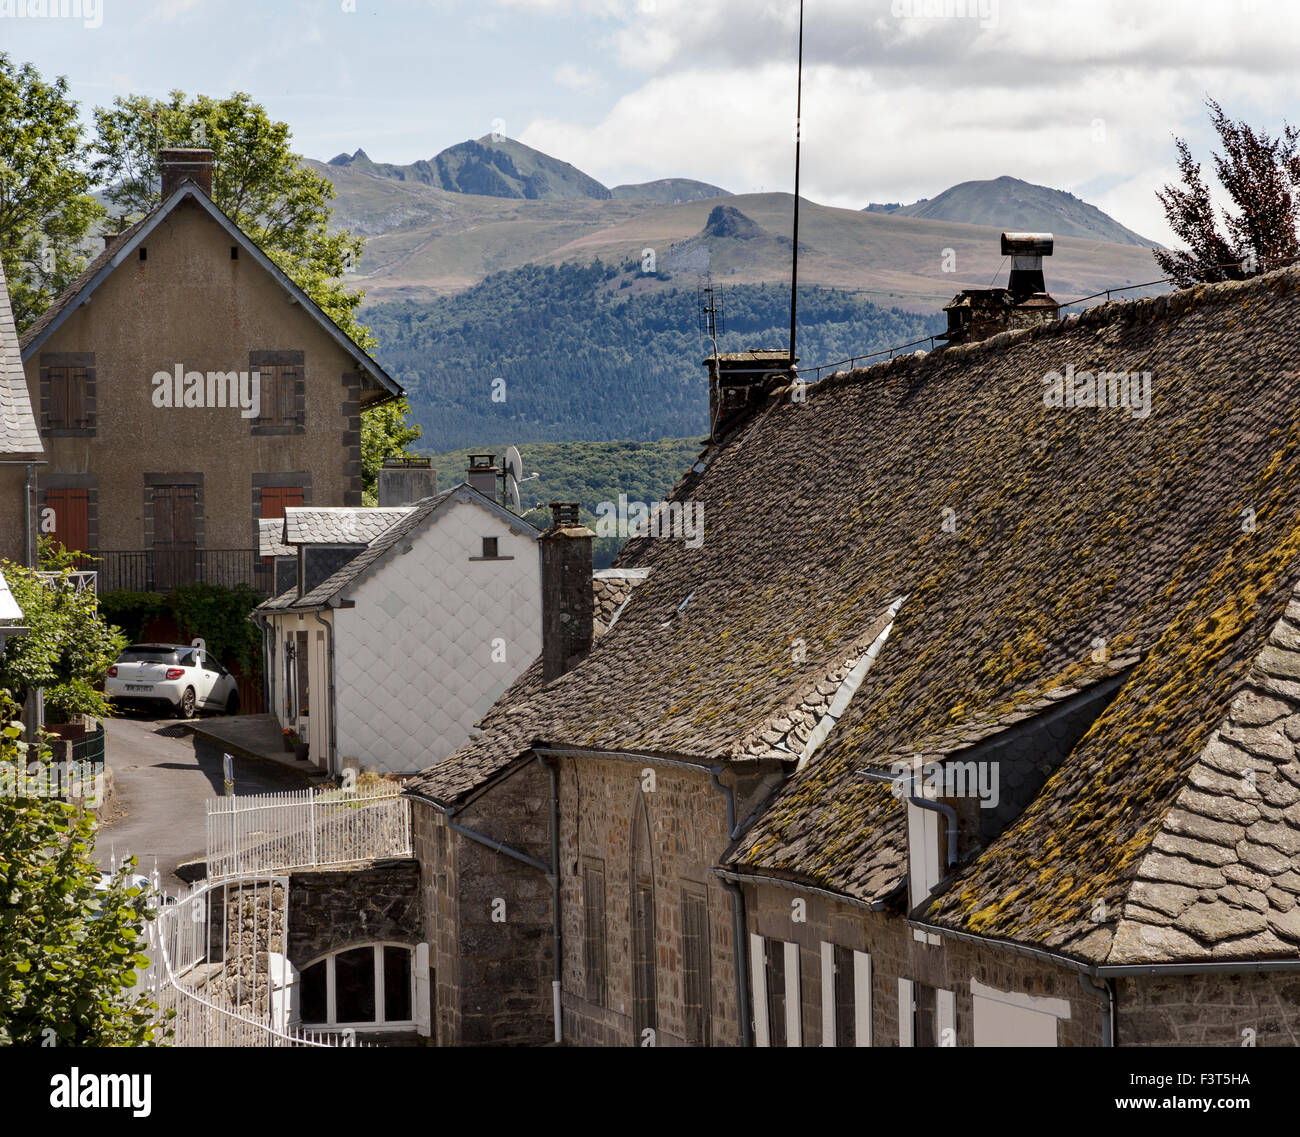 The town of La Tour d'Auvergne with Puy de Sancy and another extinct volcano in the background - Stock Image